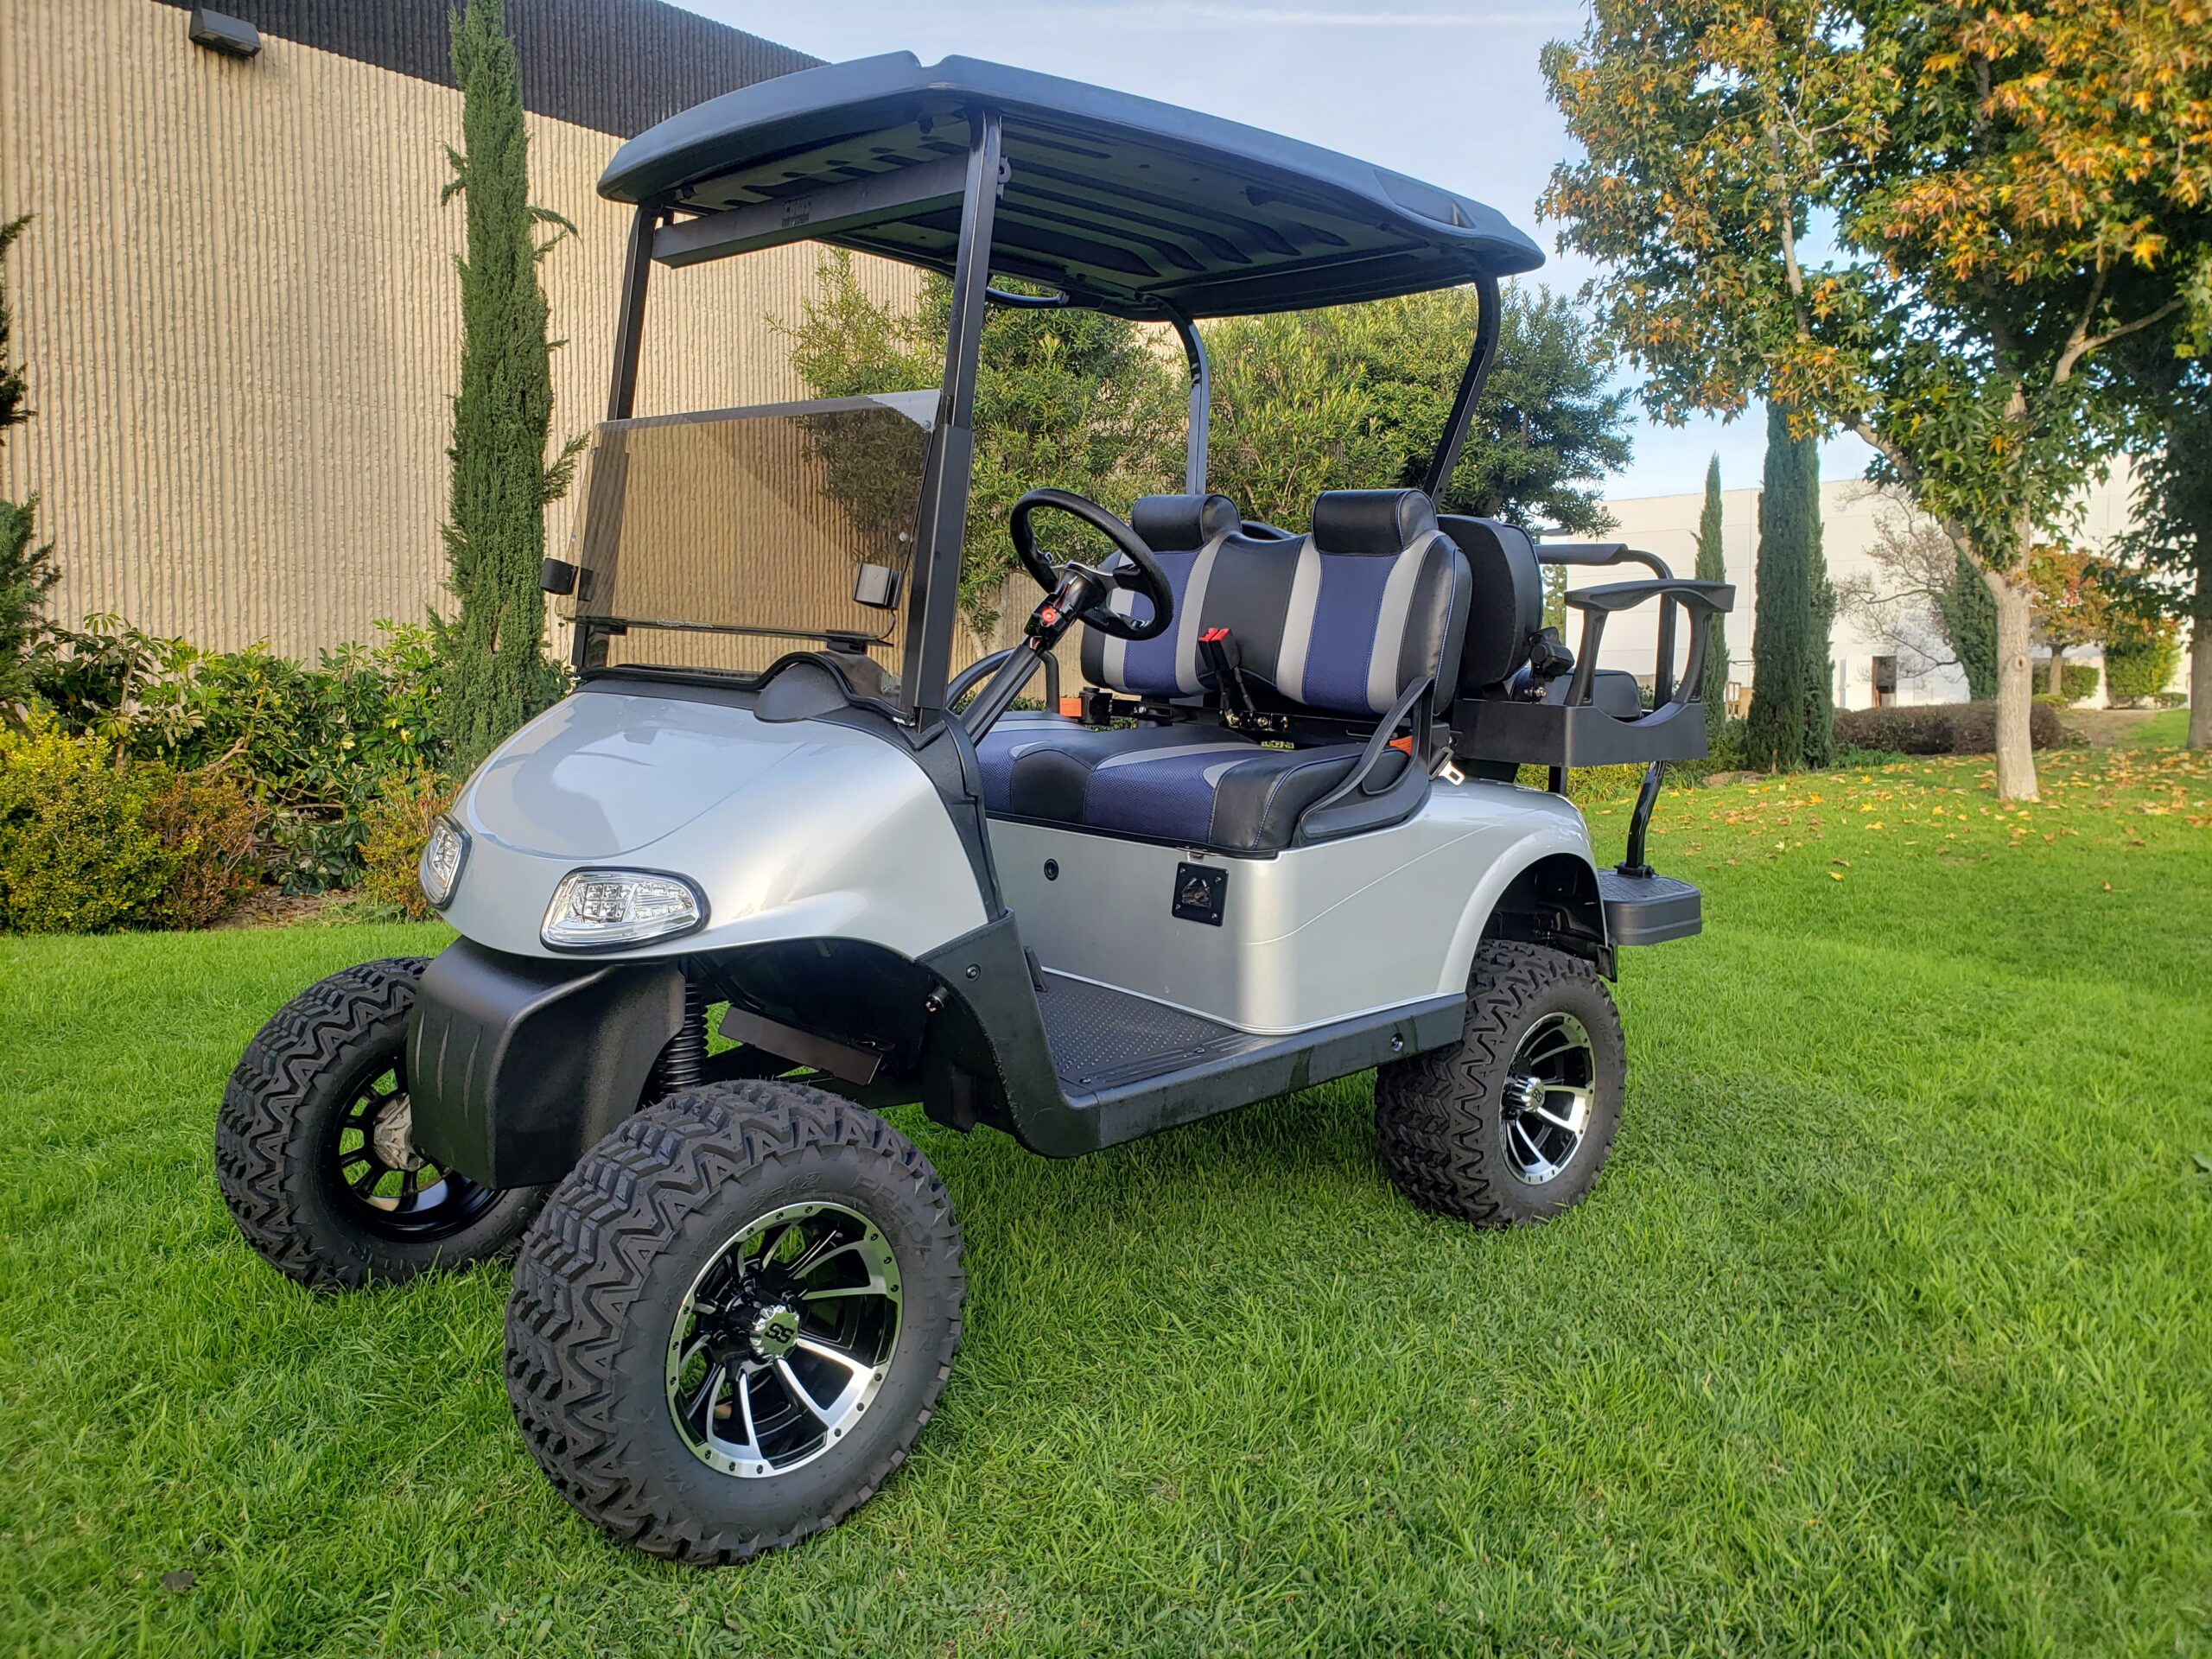 Ezgo Rxv Platinum Lifted 4 Passenger Golf Cart – Upgraded Seats